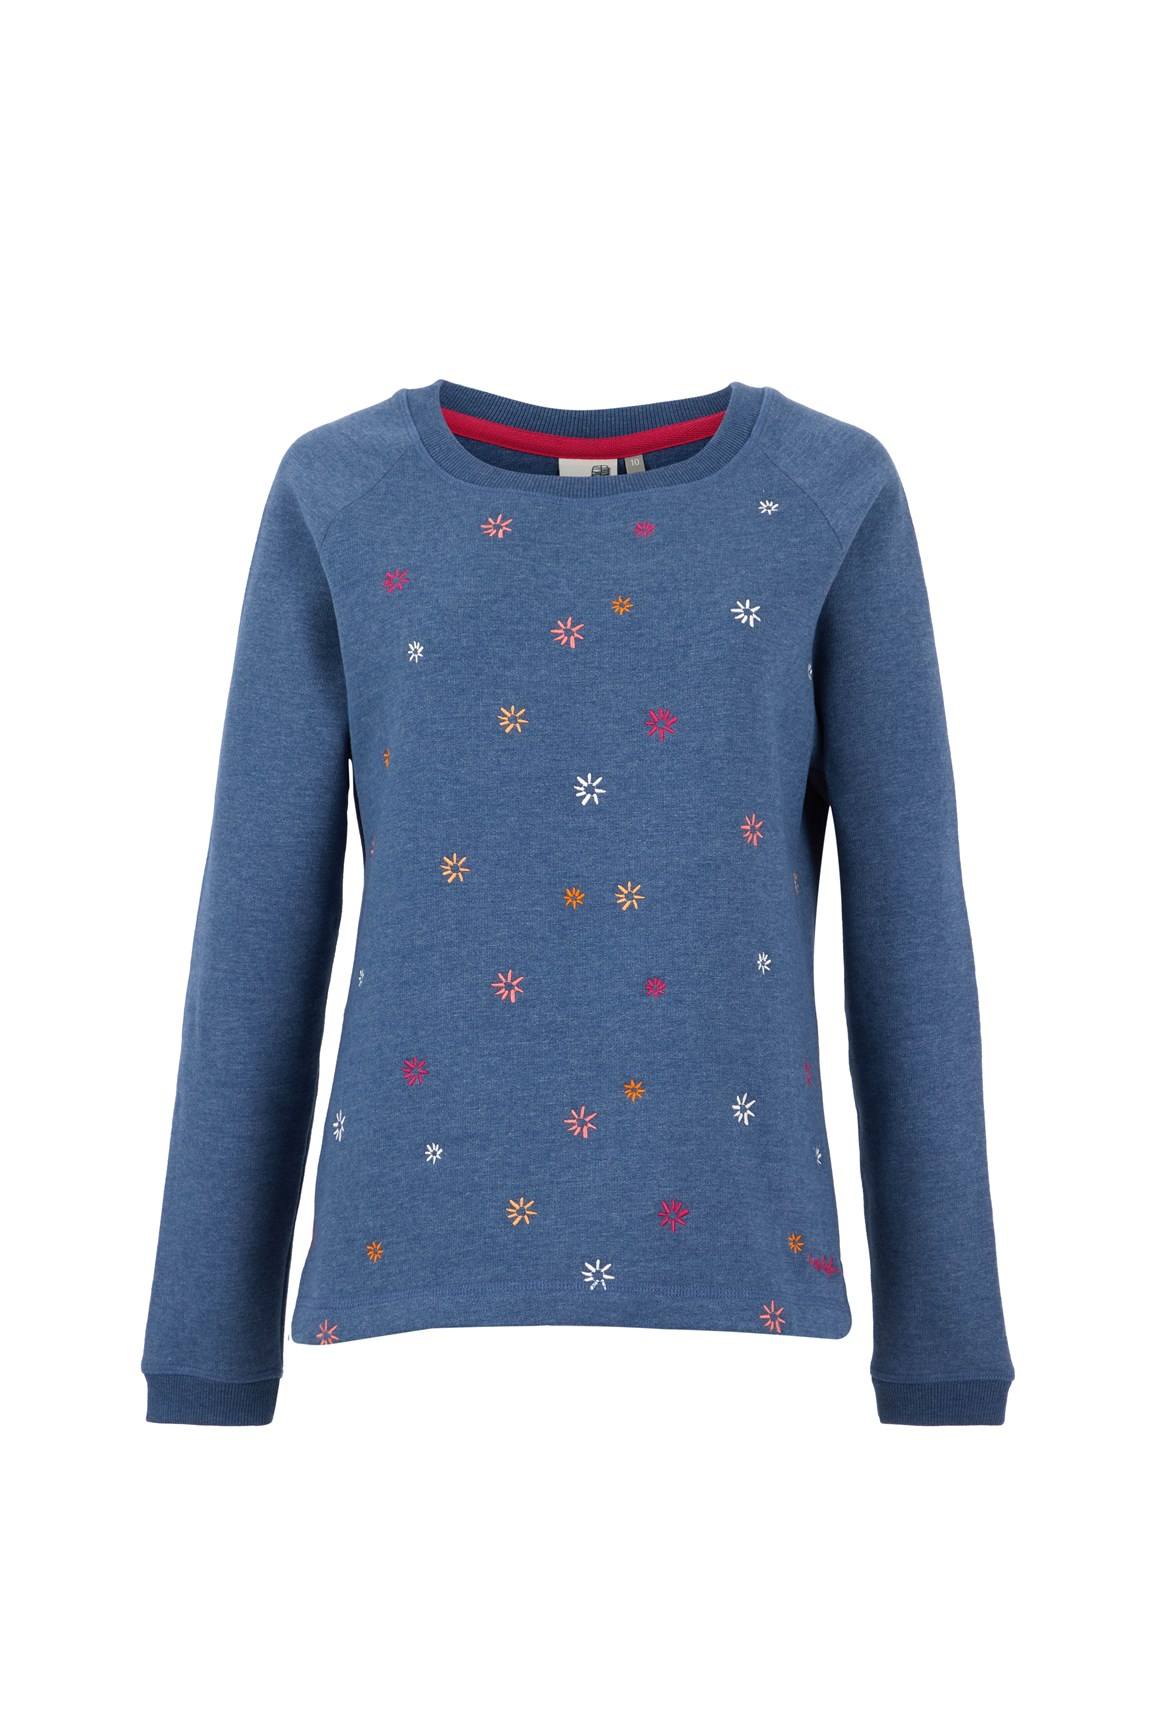 Men's Tops Weird Fish Angra Embroidered Crew Neck Sweat Ensign Blue Size 18